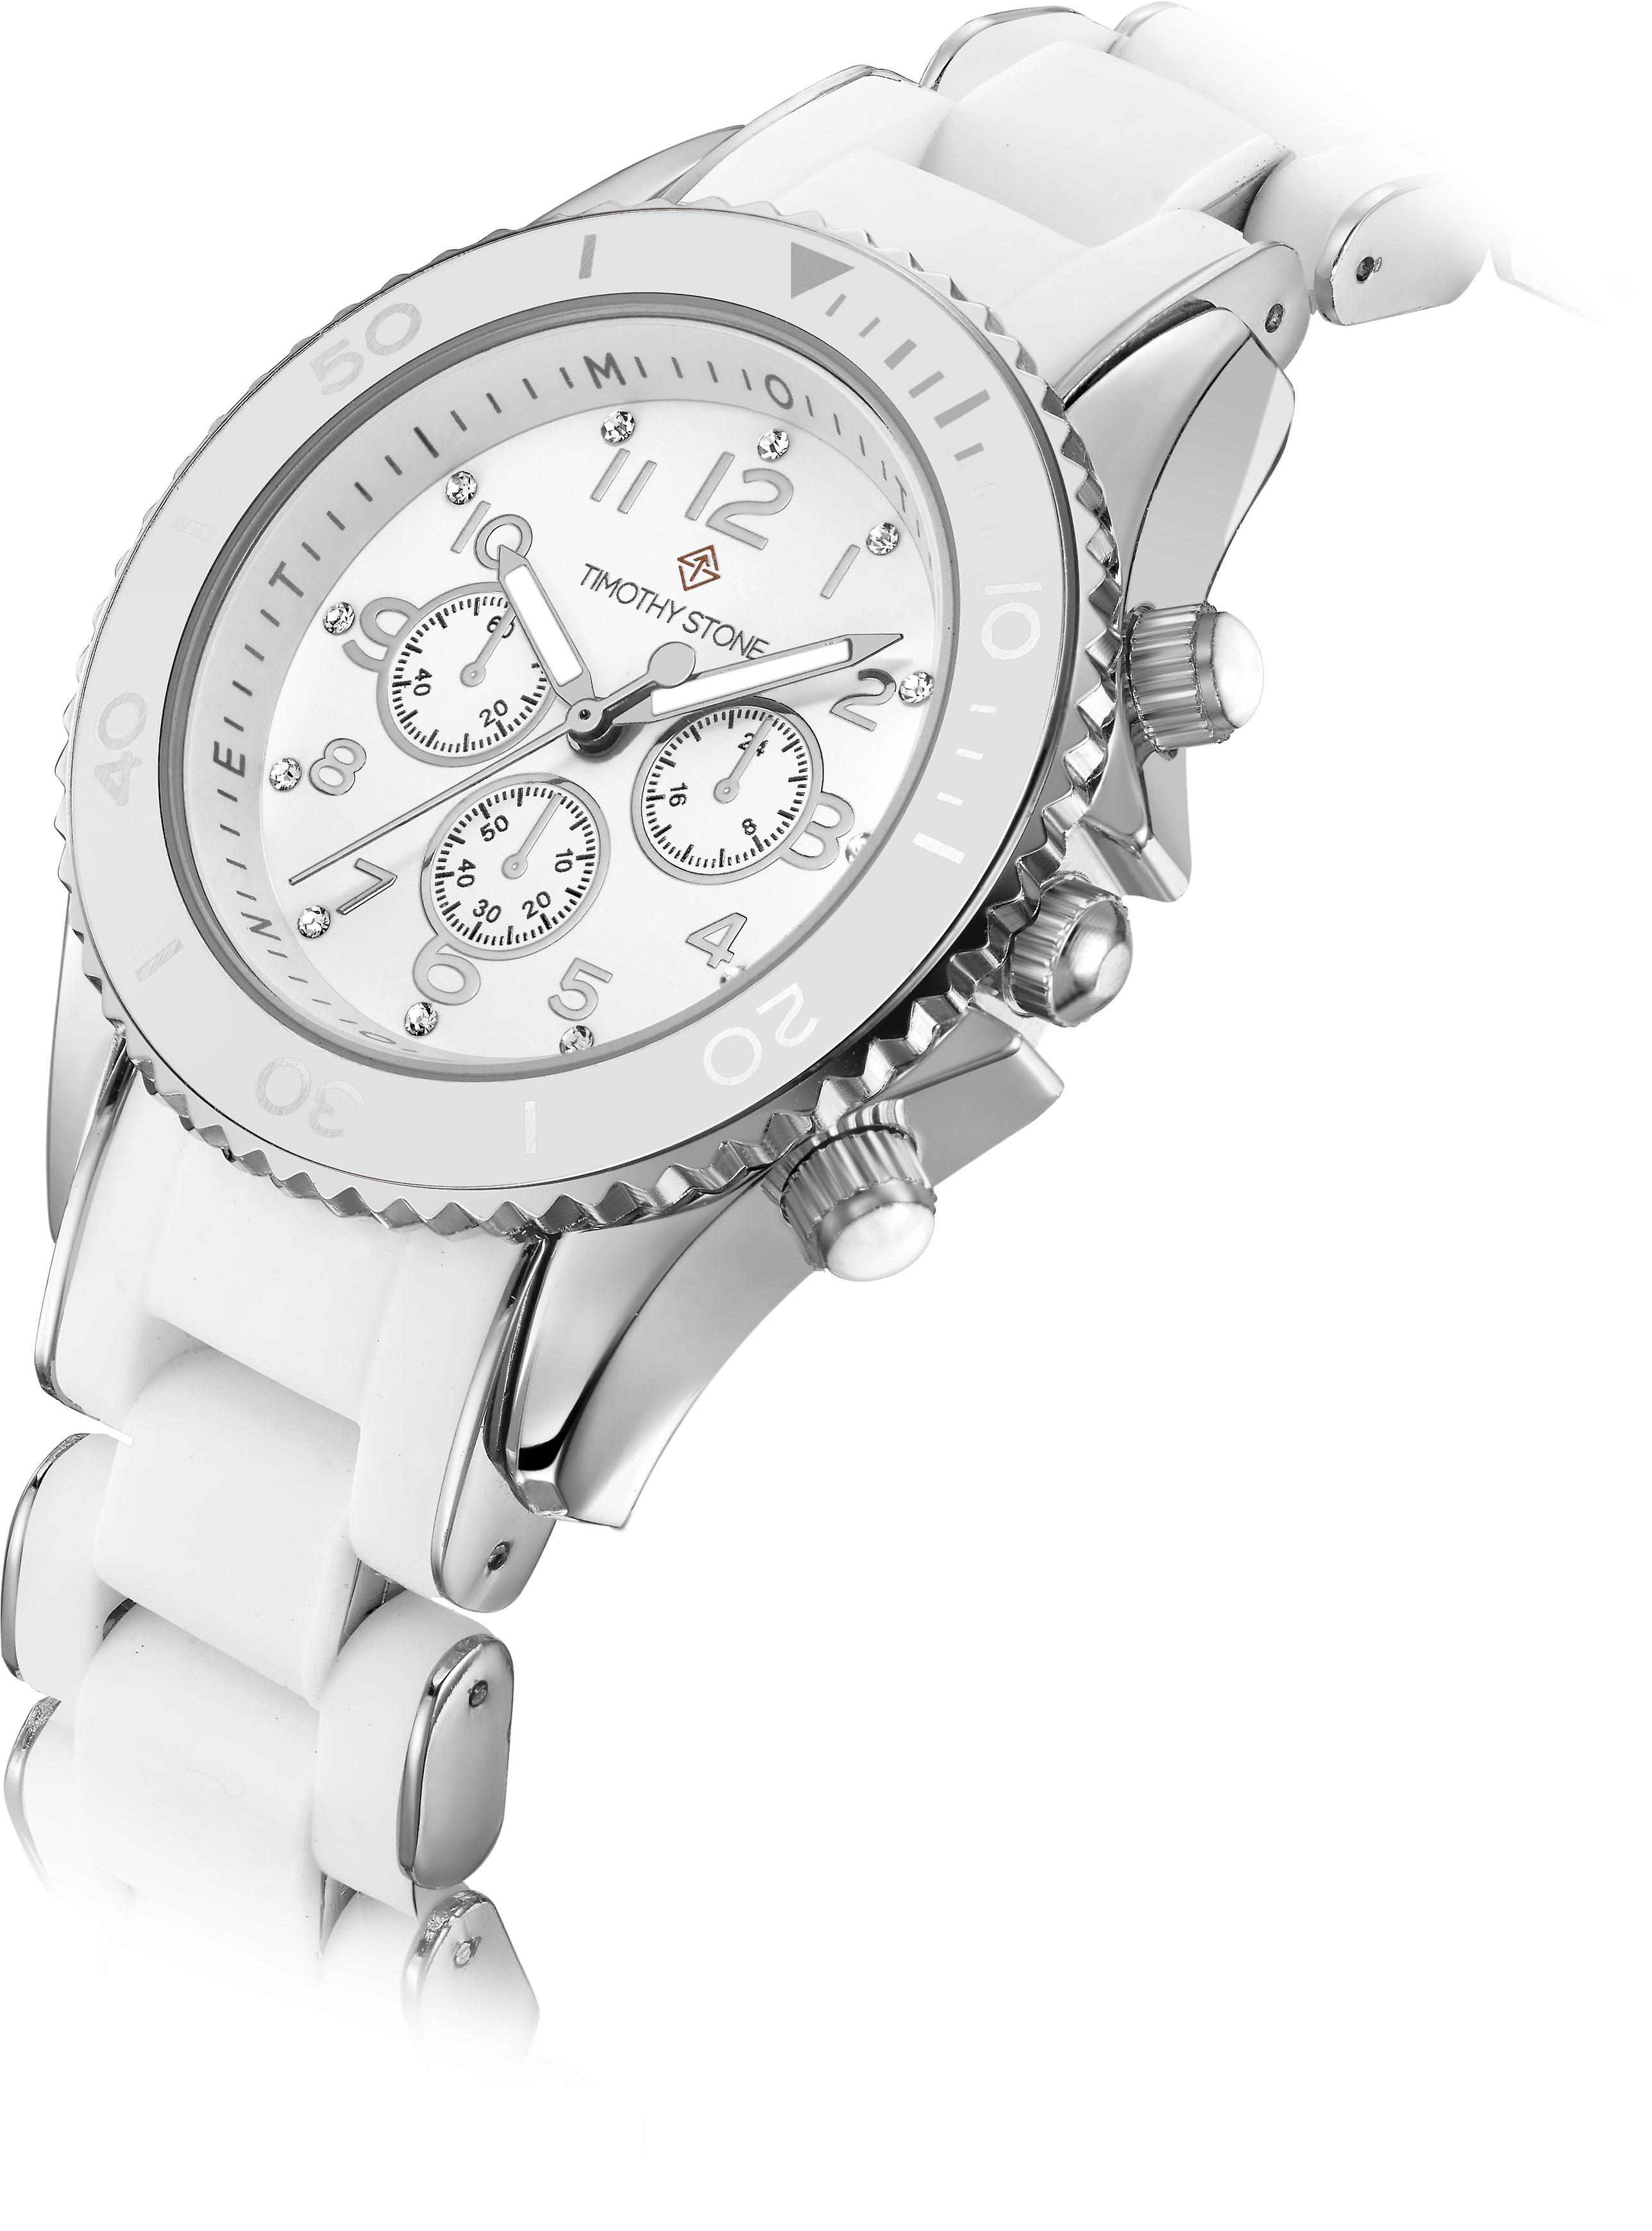 Timothy Stone Women's AMBER-SILICONE White and Silver Watch